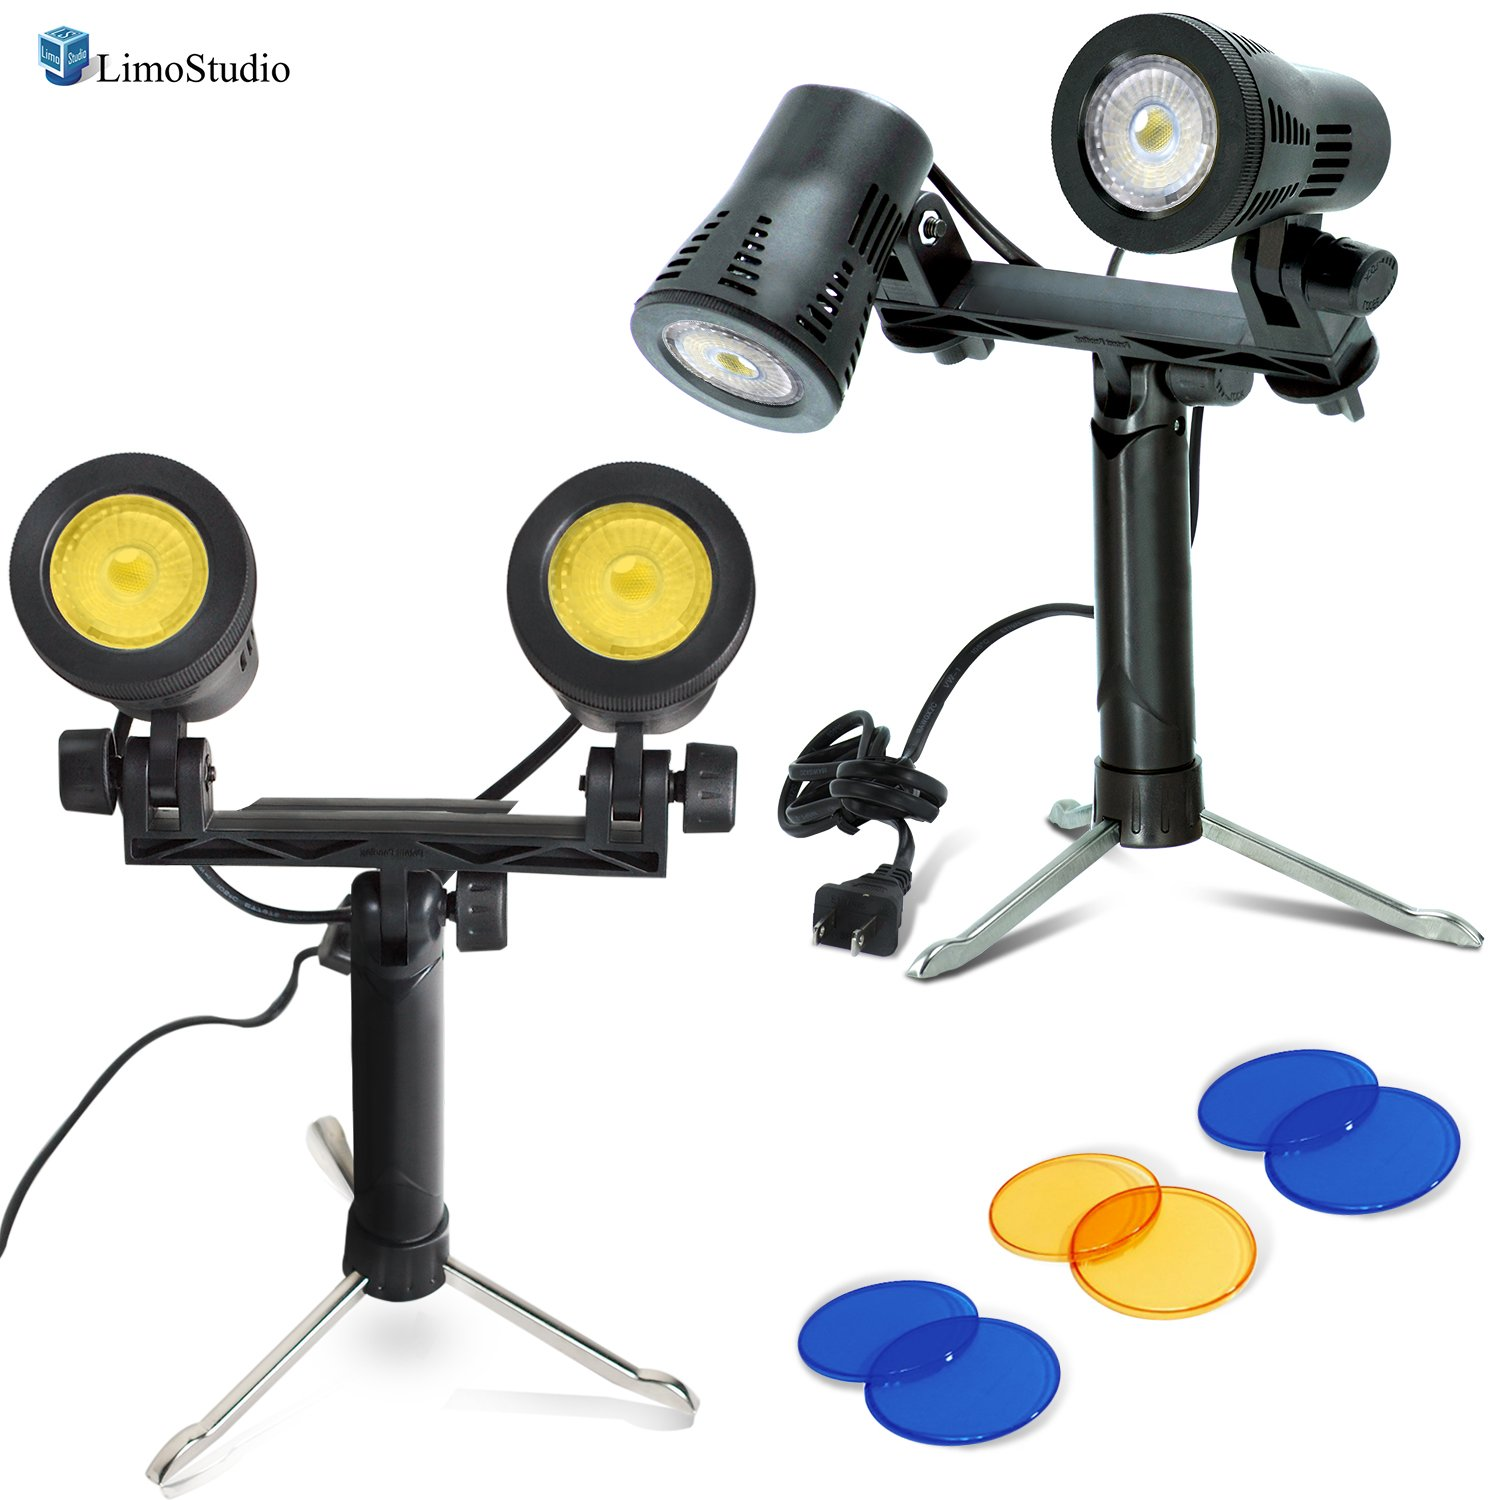 LimoStudio Photography Continuous 600 Lumen LED Light Set for Table Top Studio Portable Lighting Kit with Gel Filters, AGG1501 VAGG1501